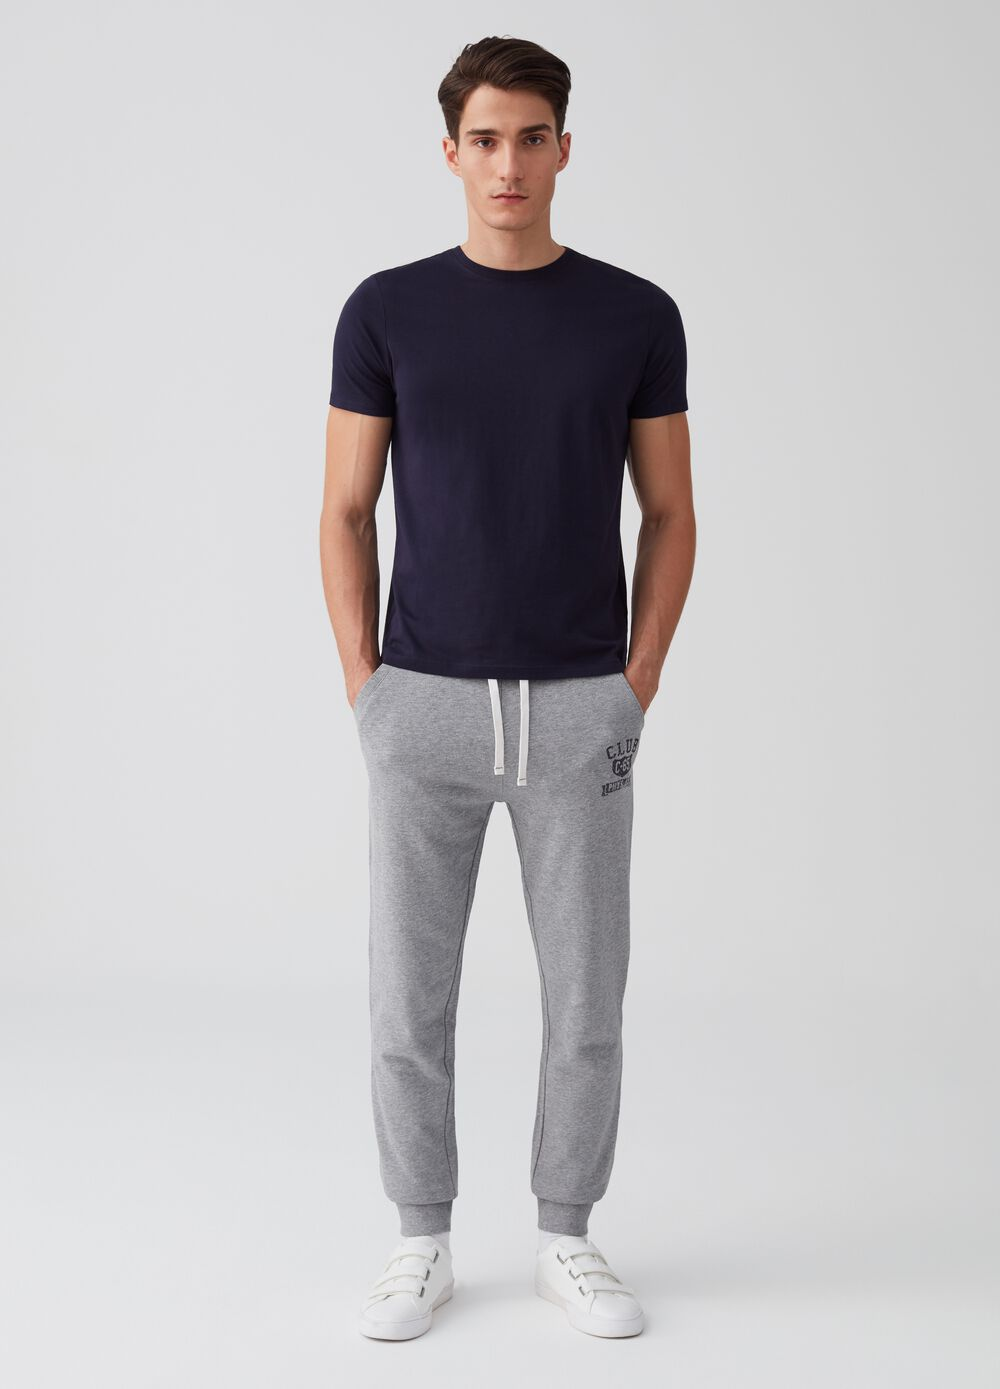 Jogger trousers with pockets and print